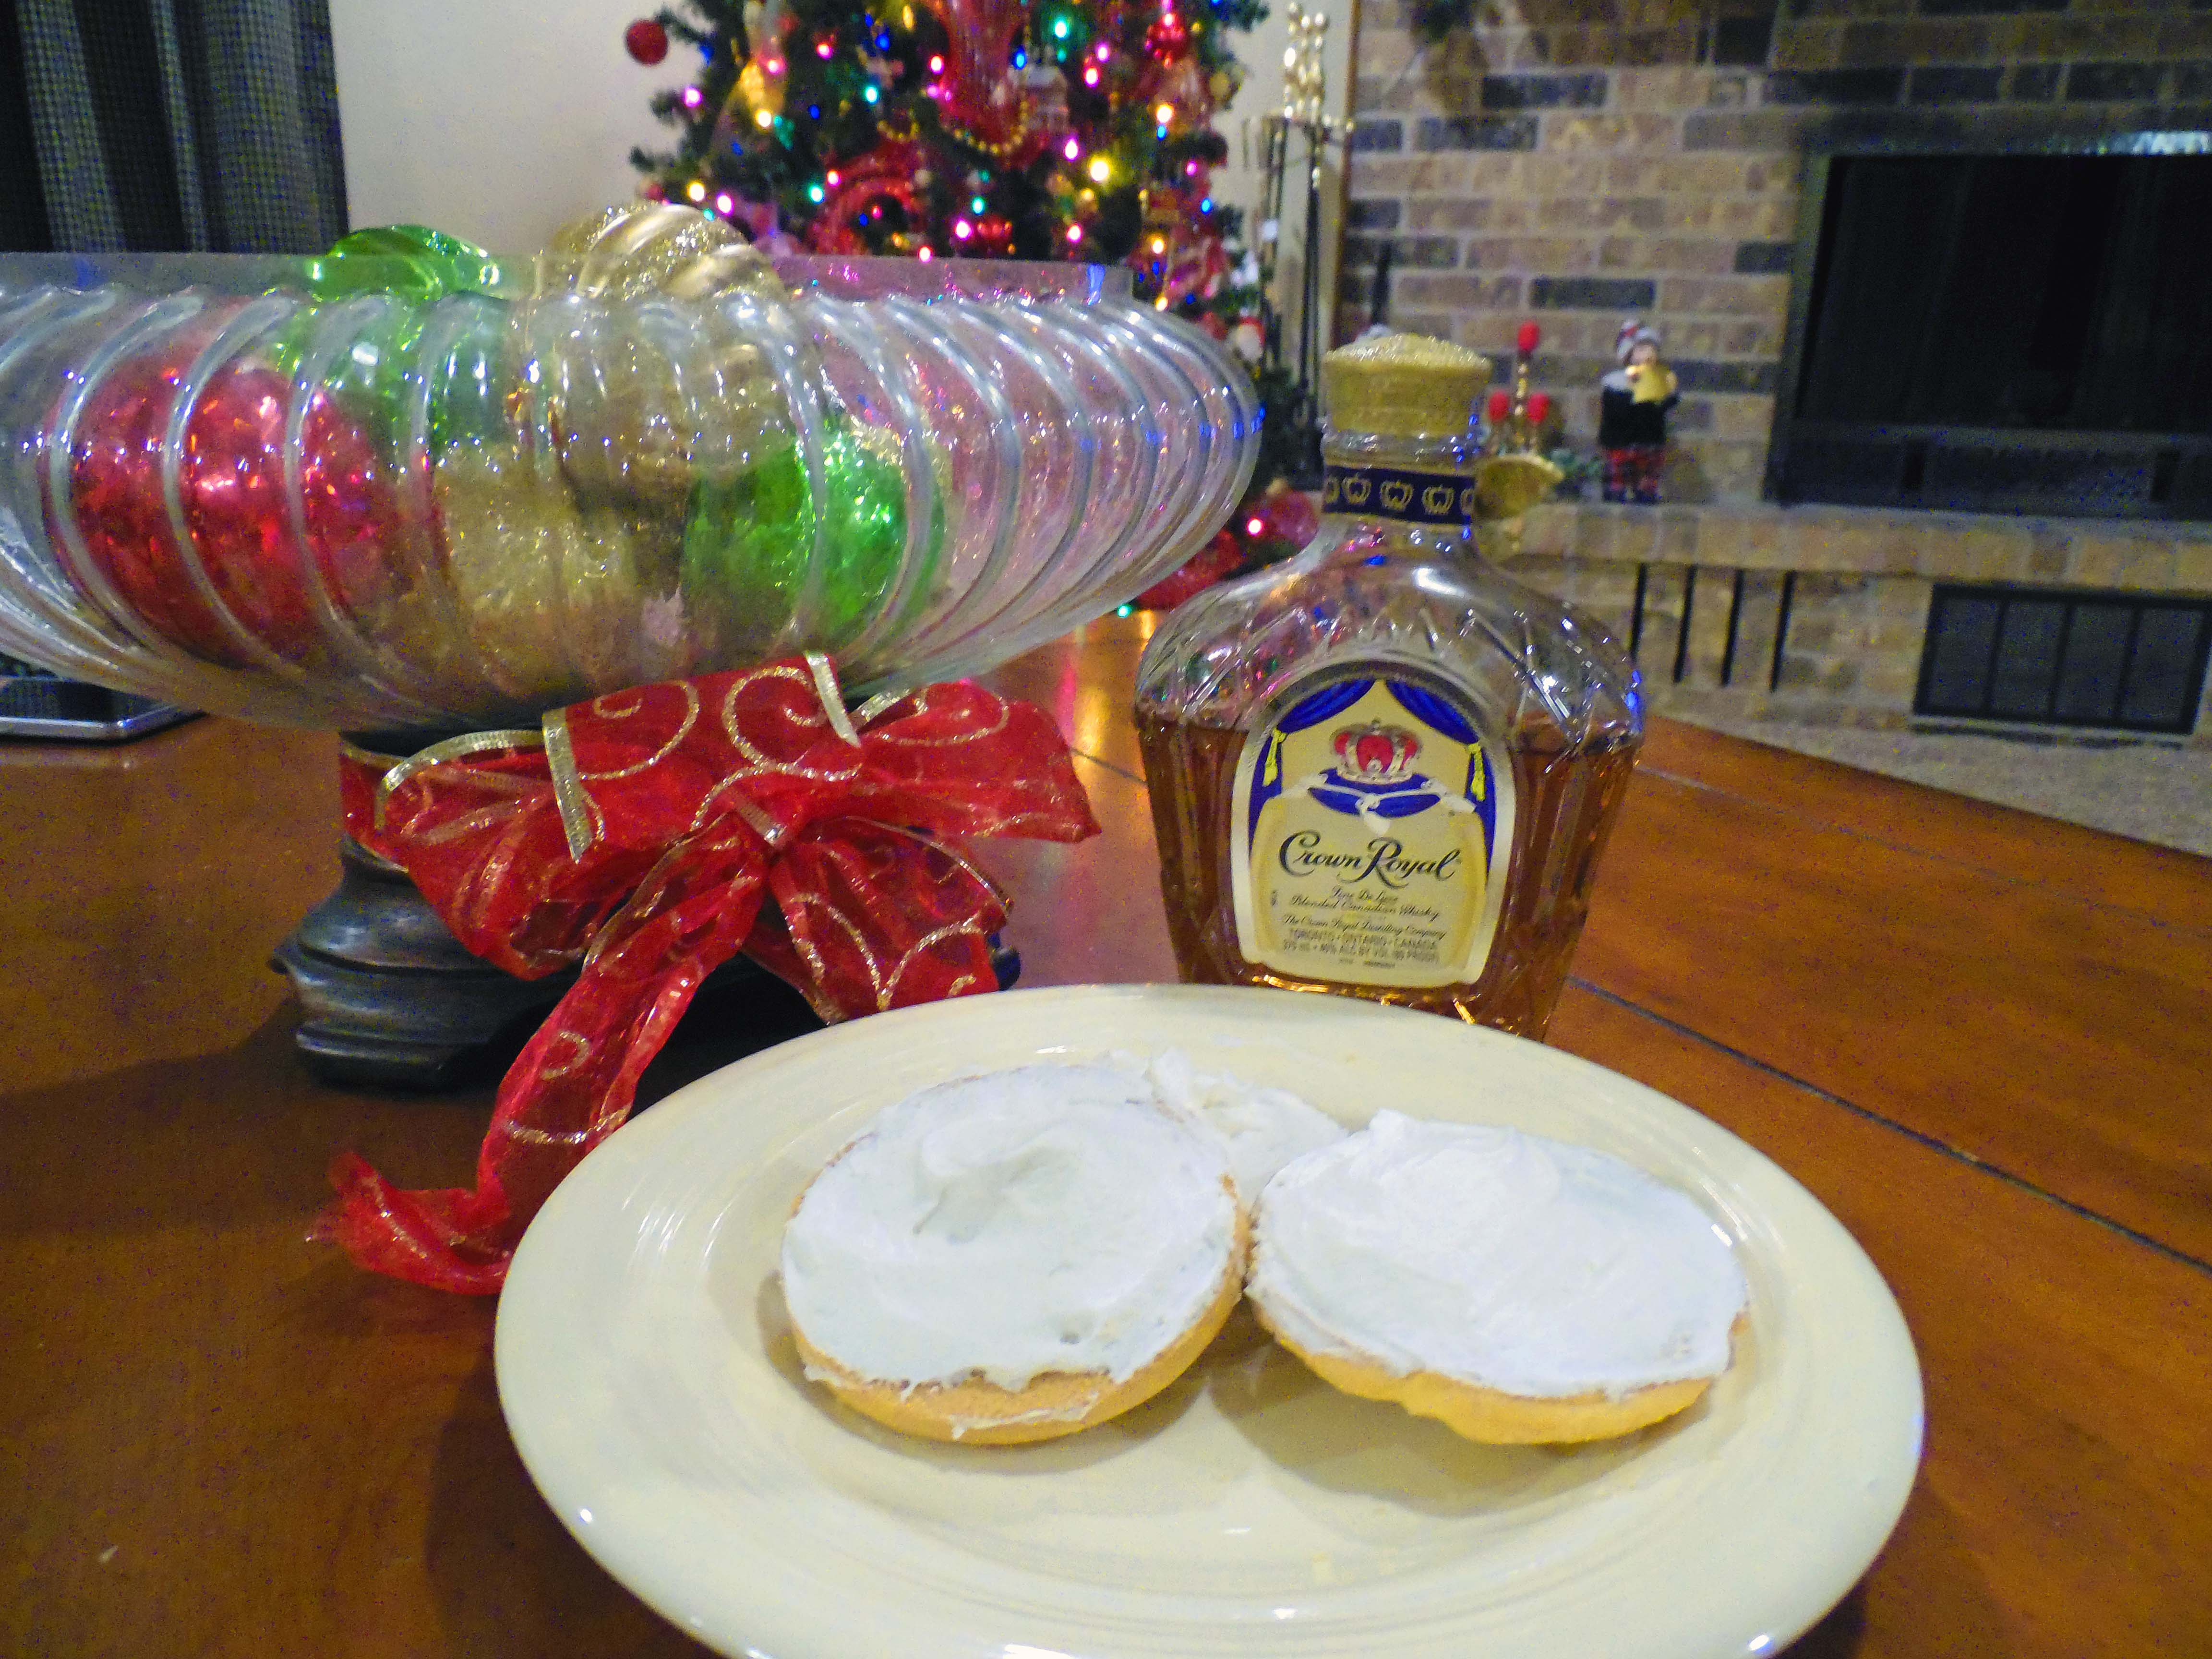 The spice up your life crown royal cookie recipe hedonist shedonist the spice up your life crown royal cookie recipe forumfinder Image collections